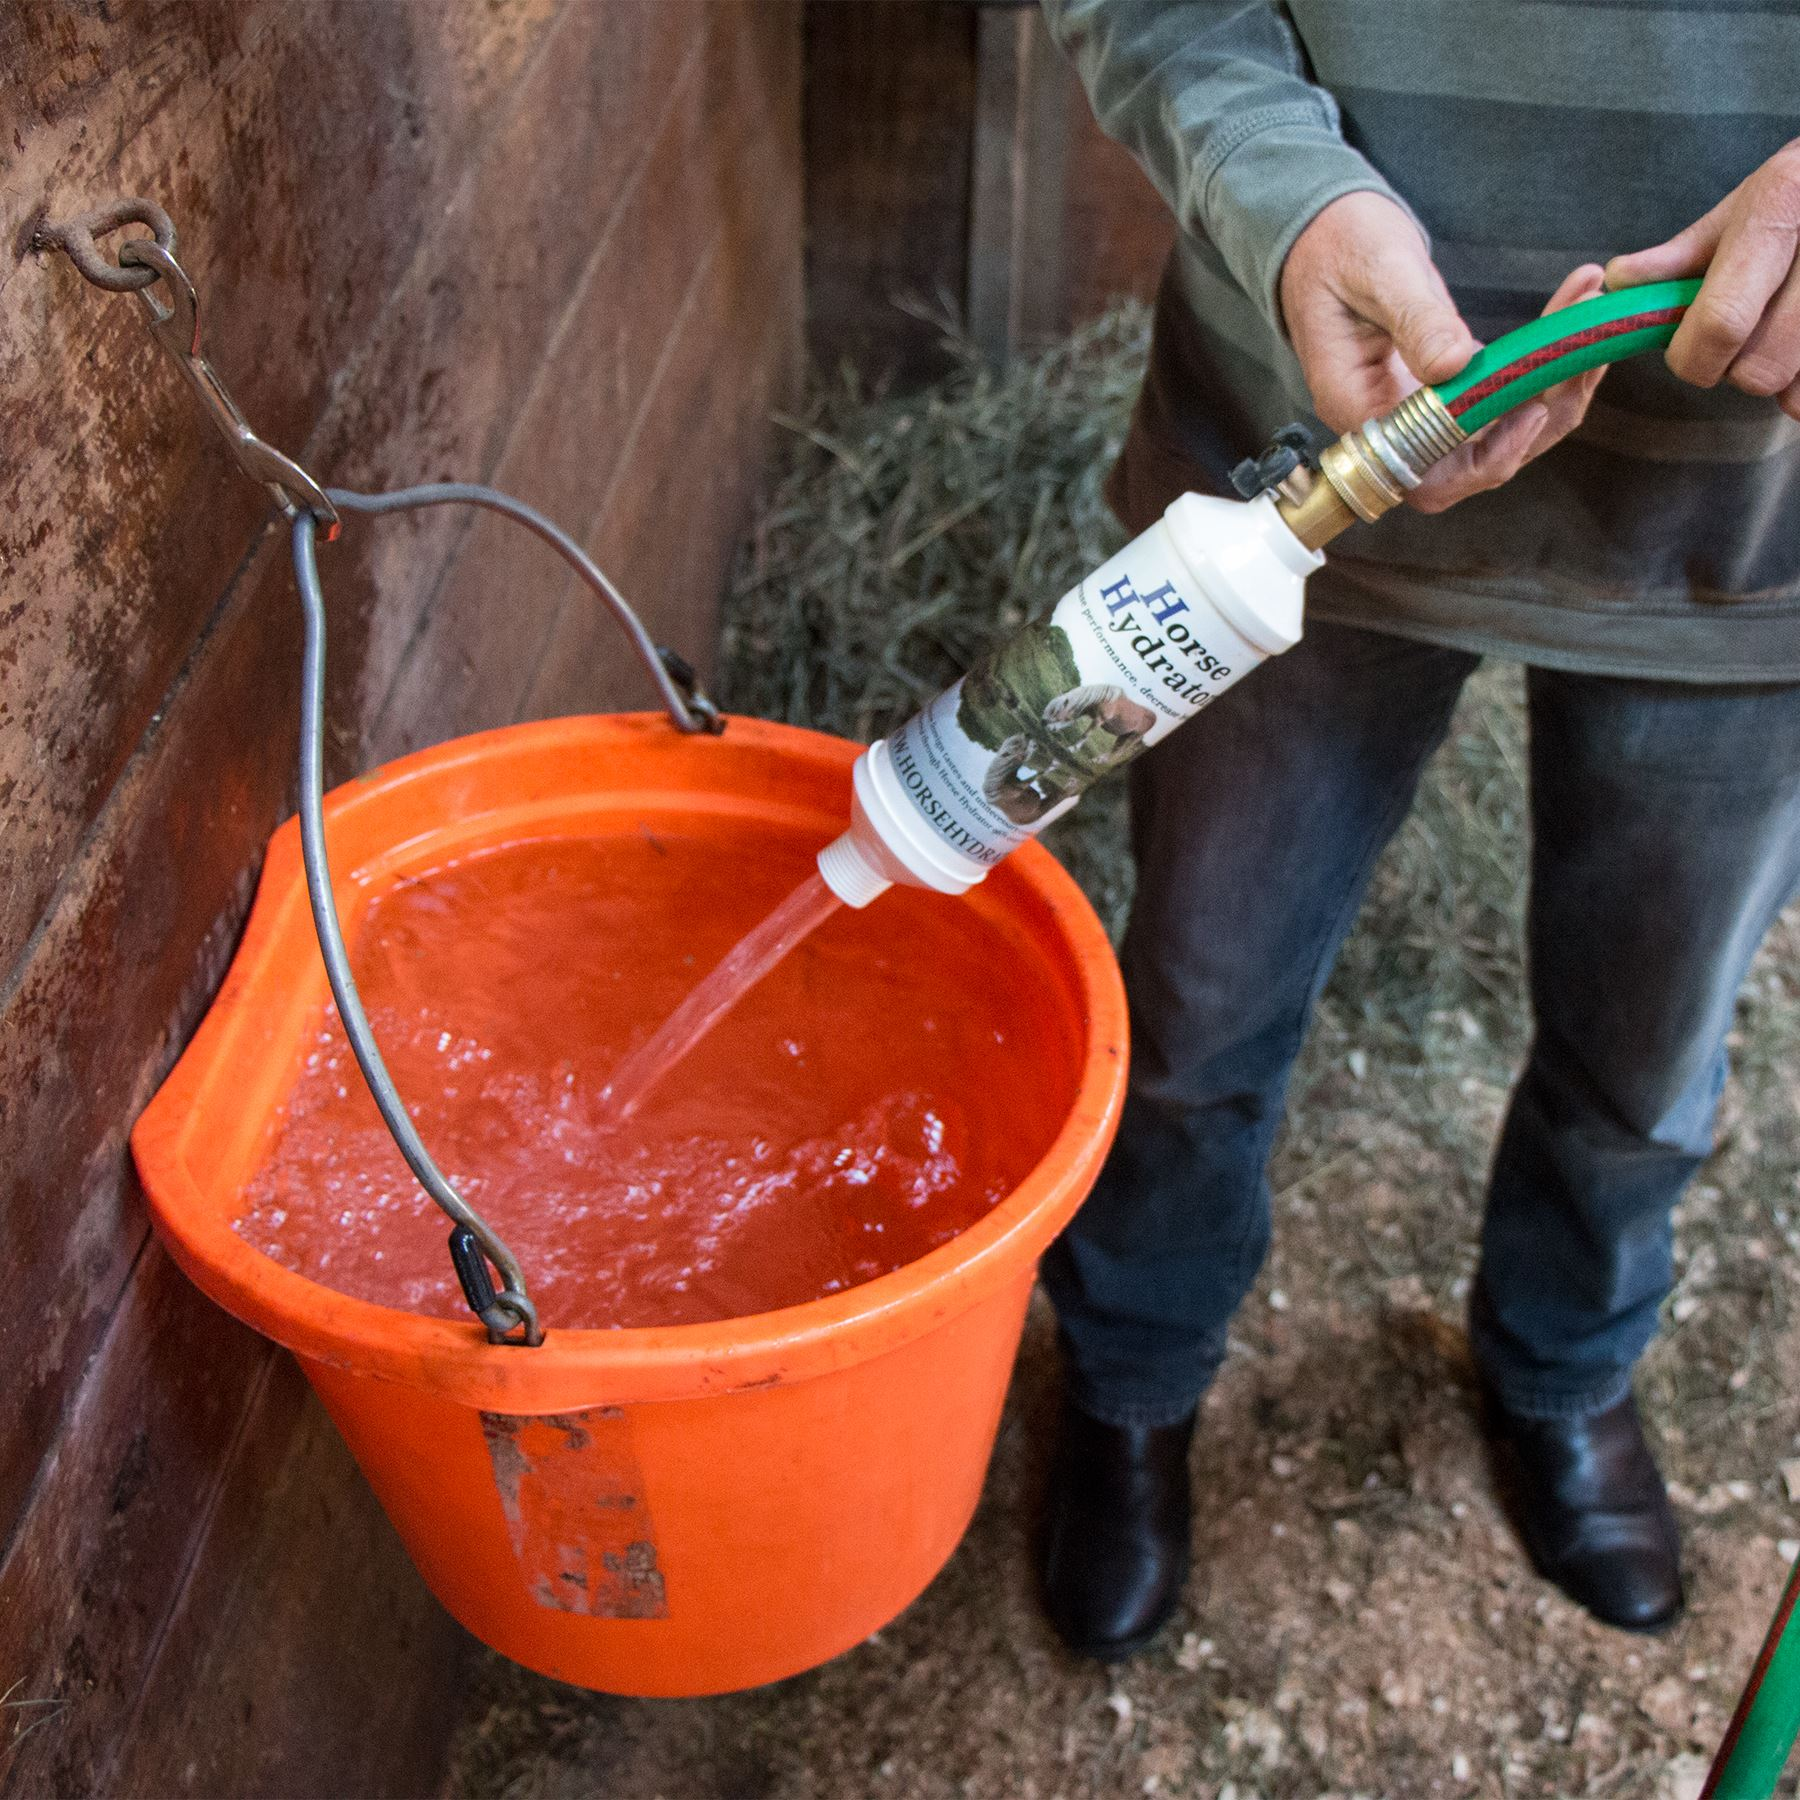 Horse Hydrator Water Filter System